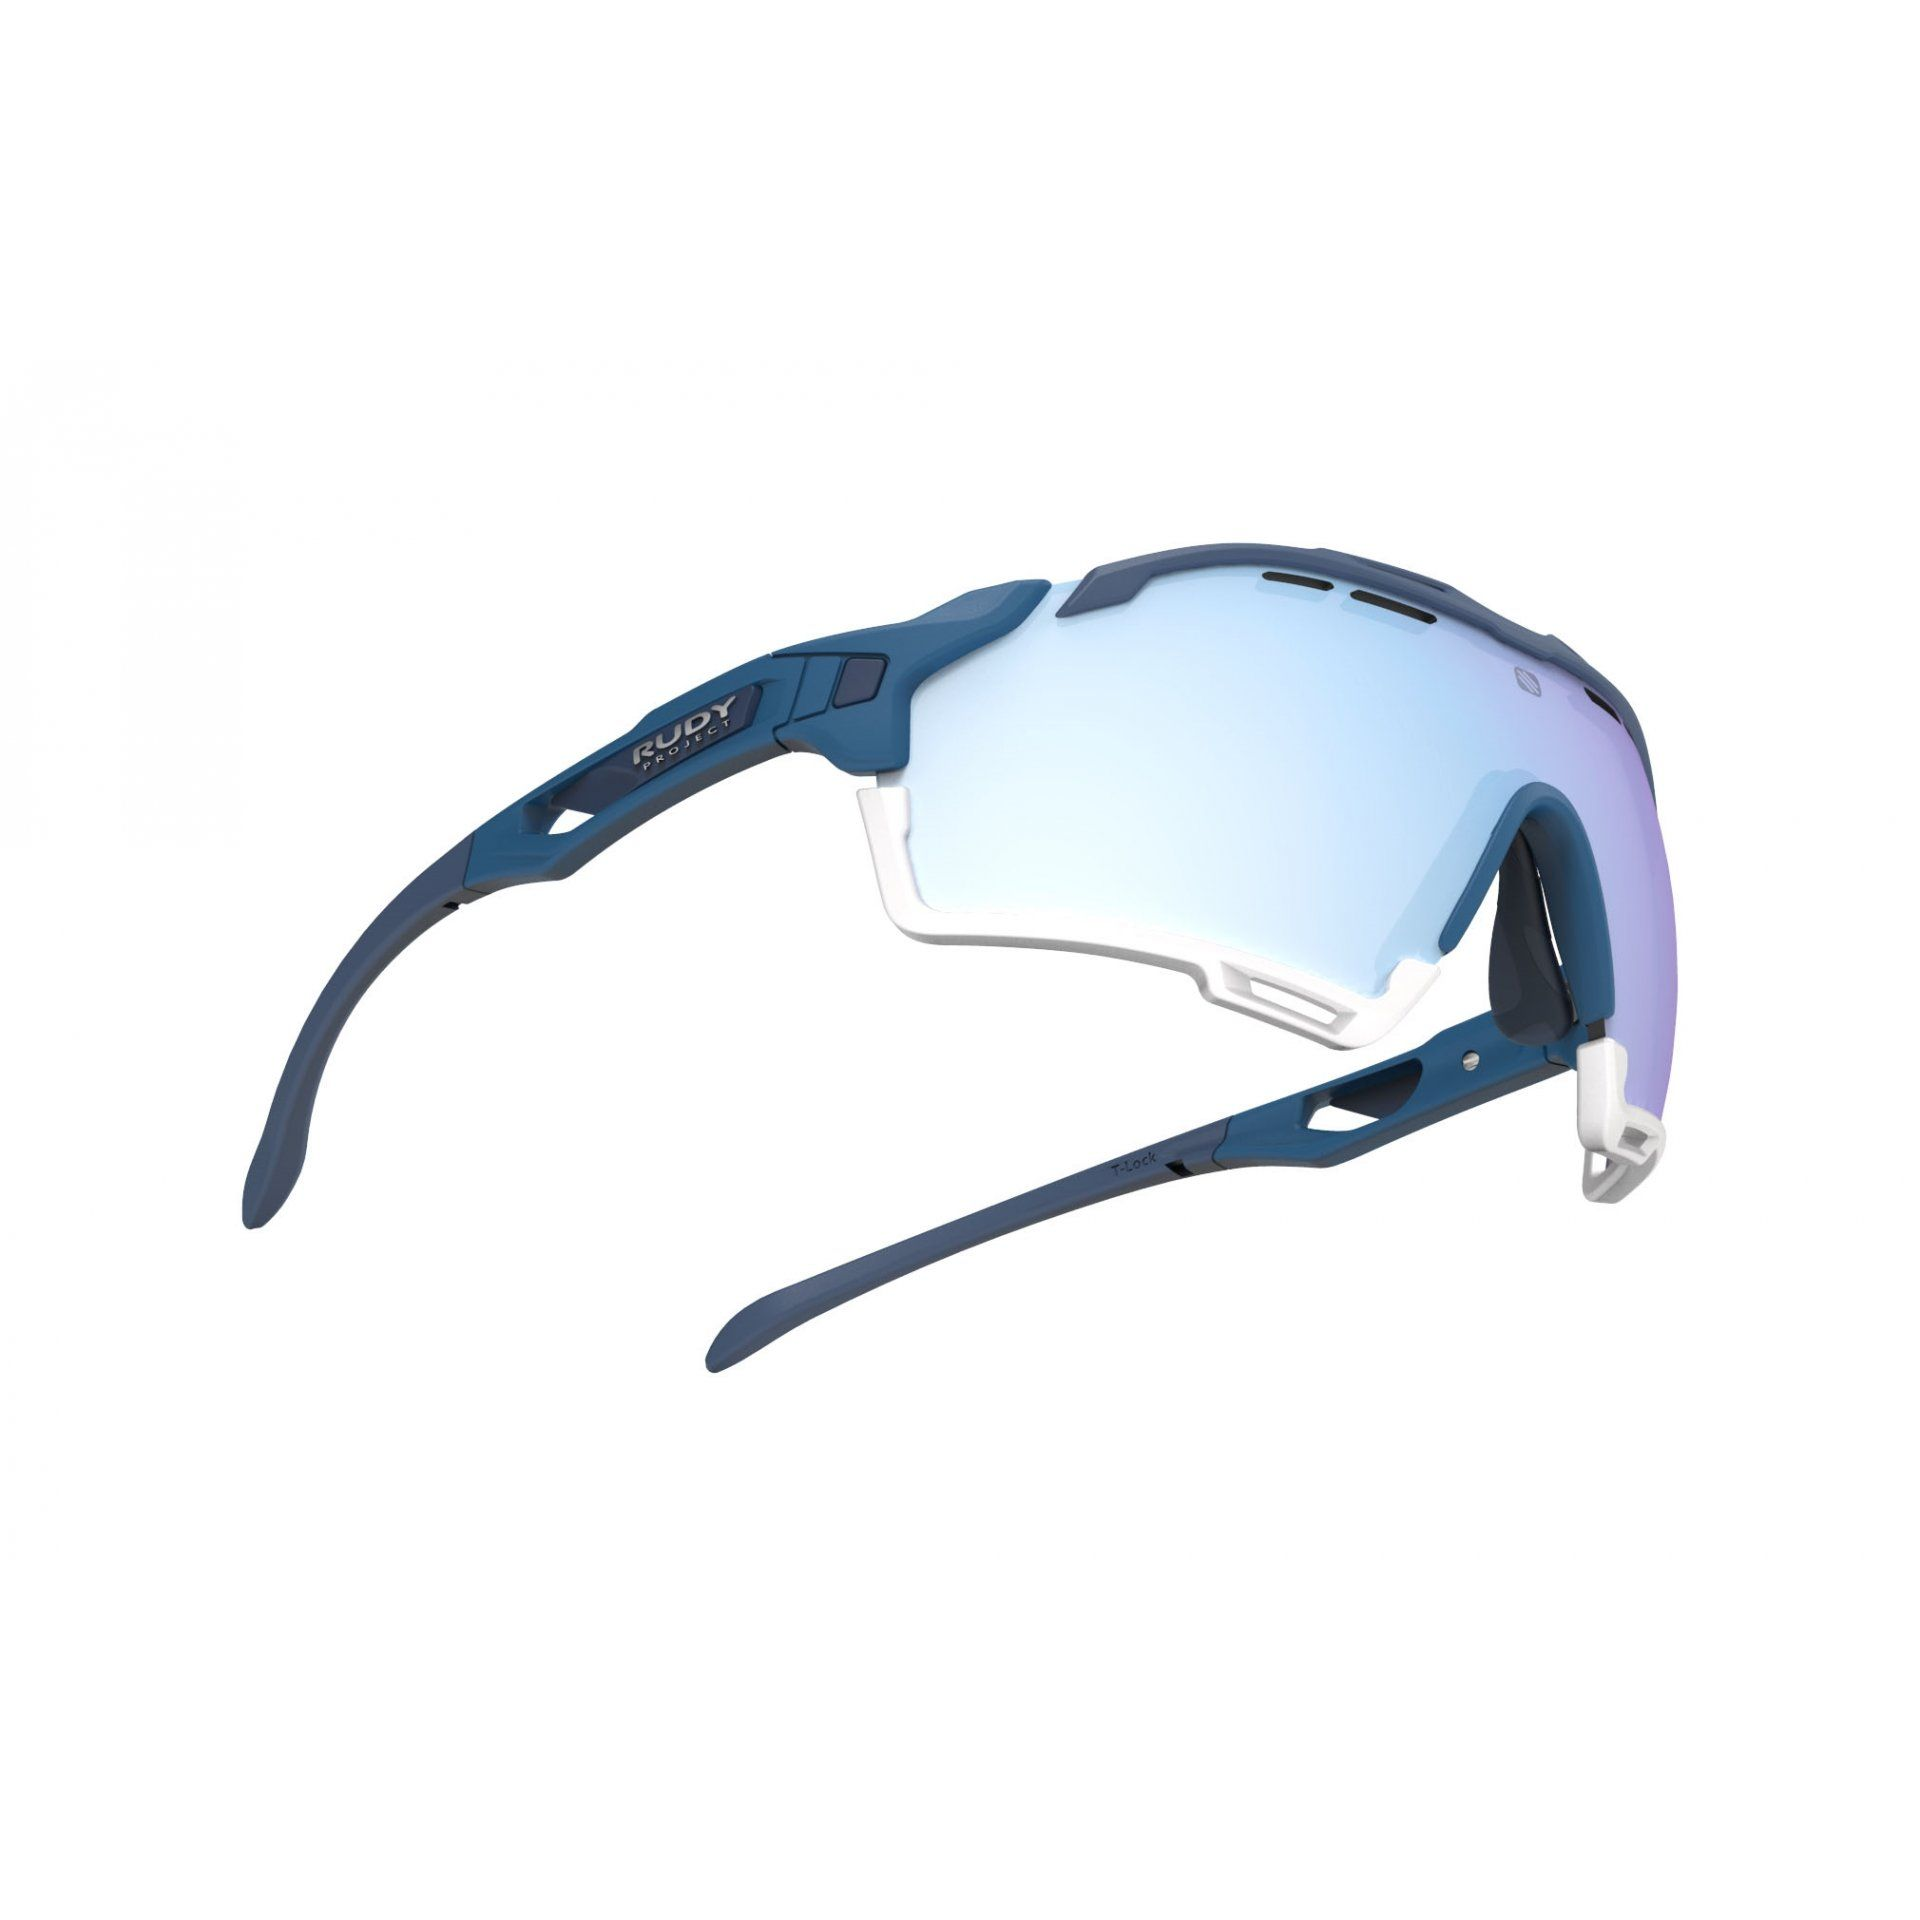 OKULARY RUDY PROJECT CUTLINE PACIFIC BLUE MATTE+MULTILASER ICE 3